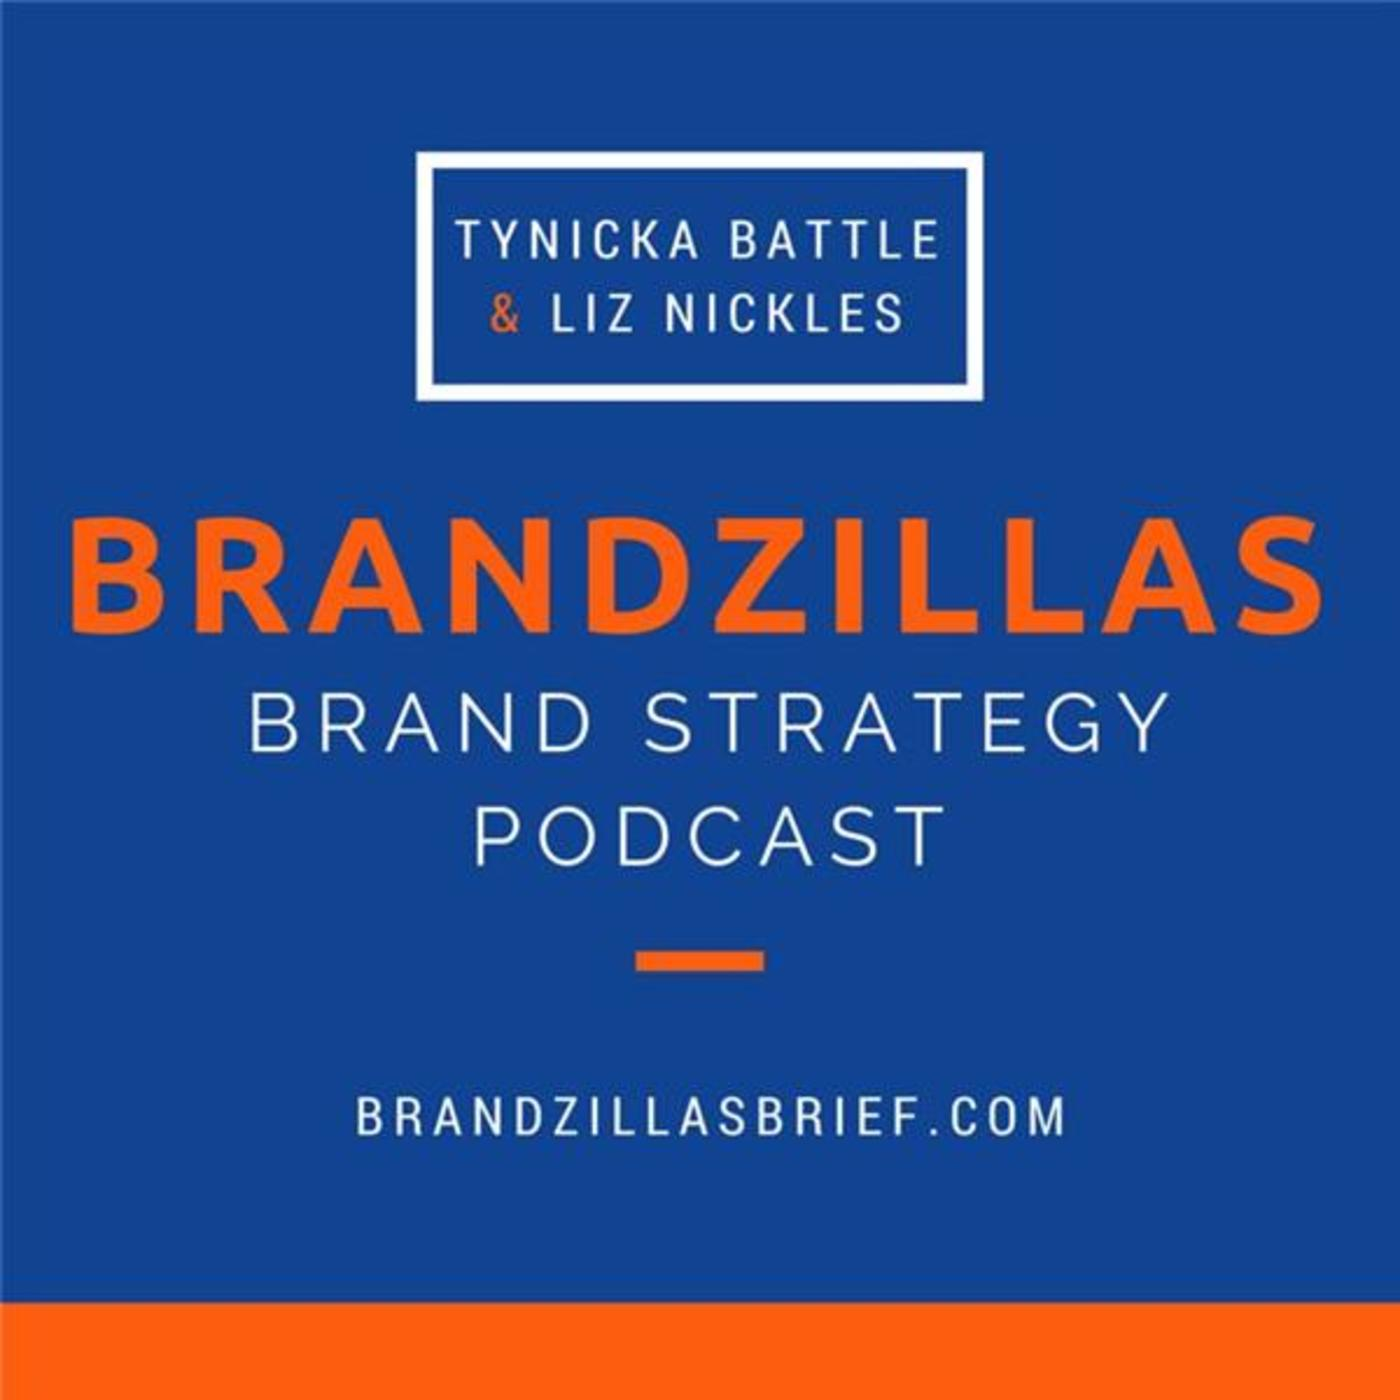 Brandzillas Brief